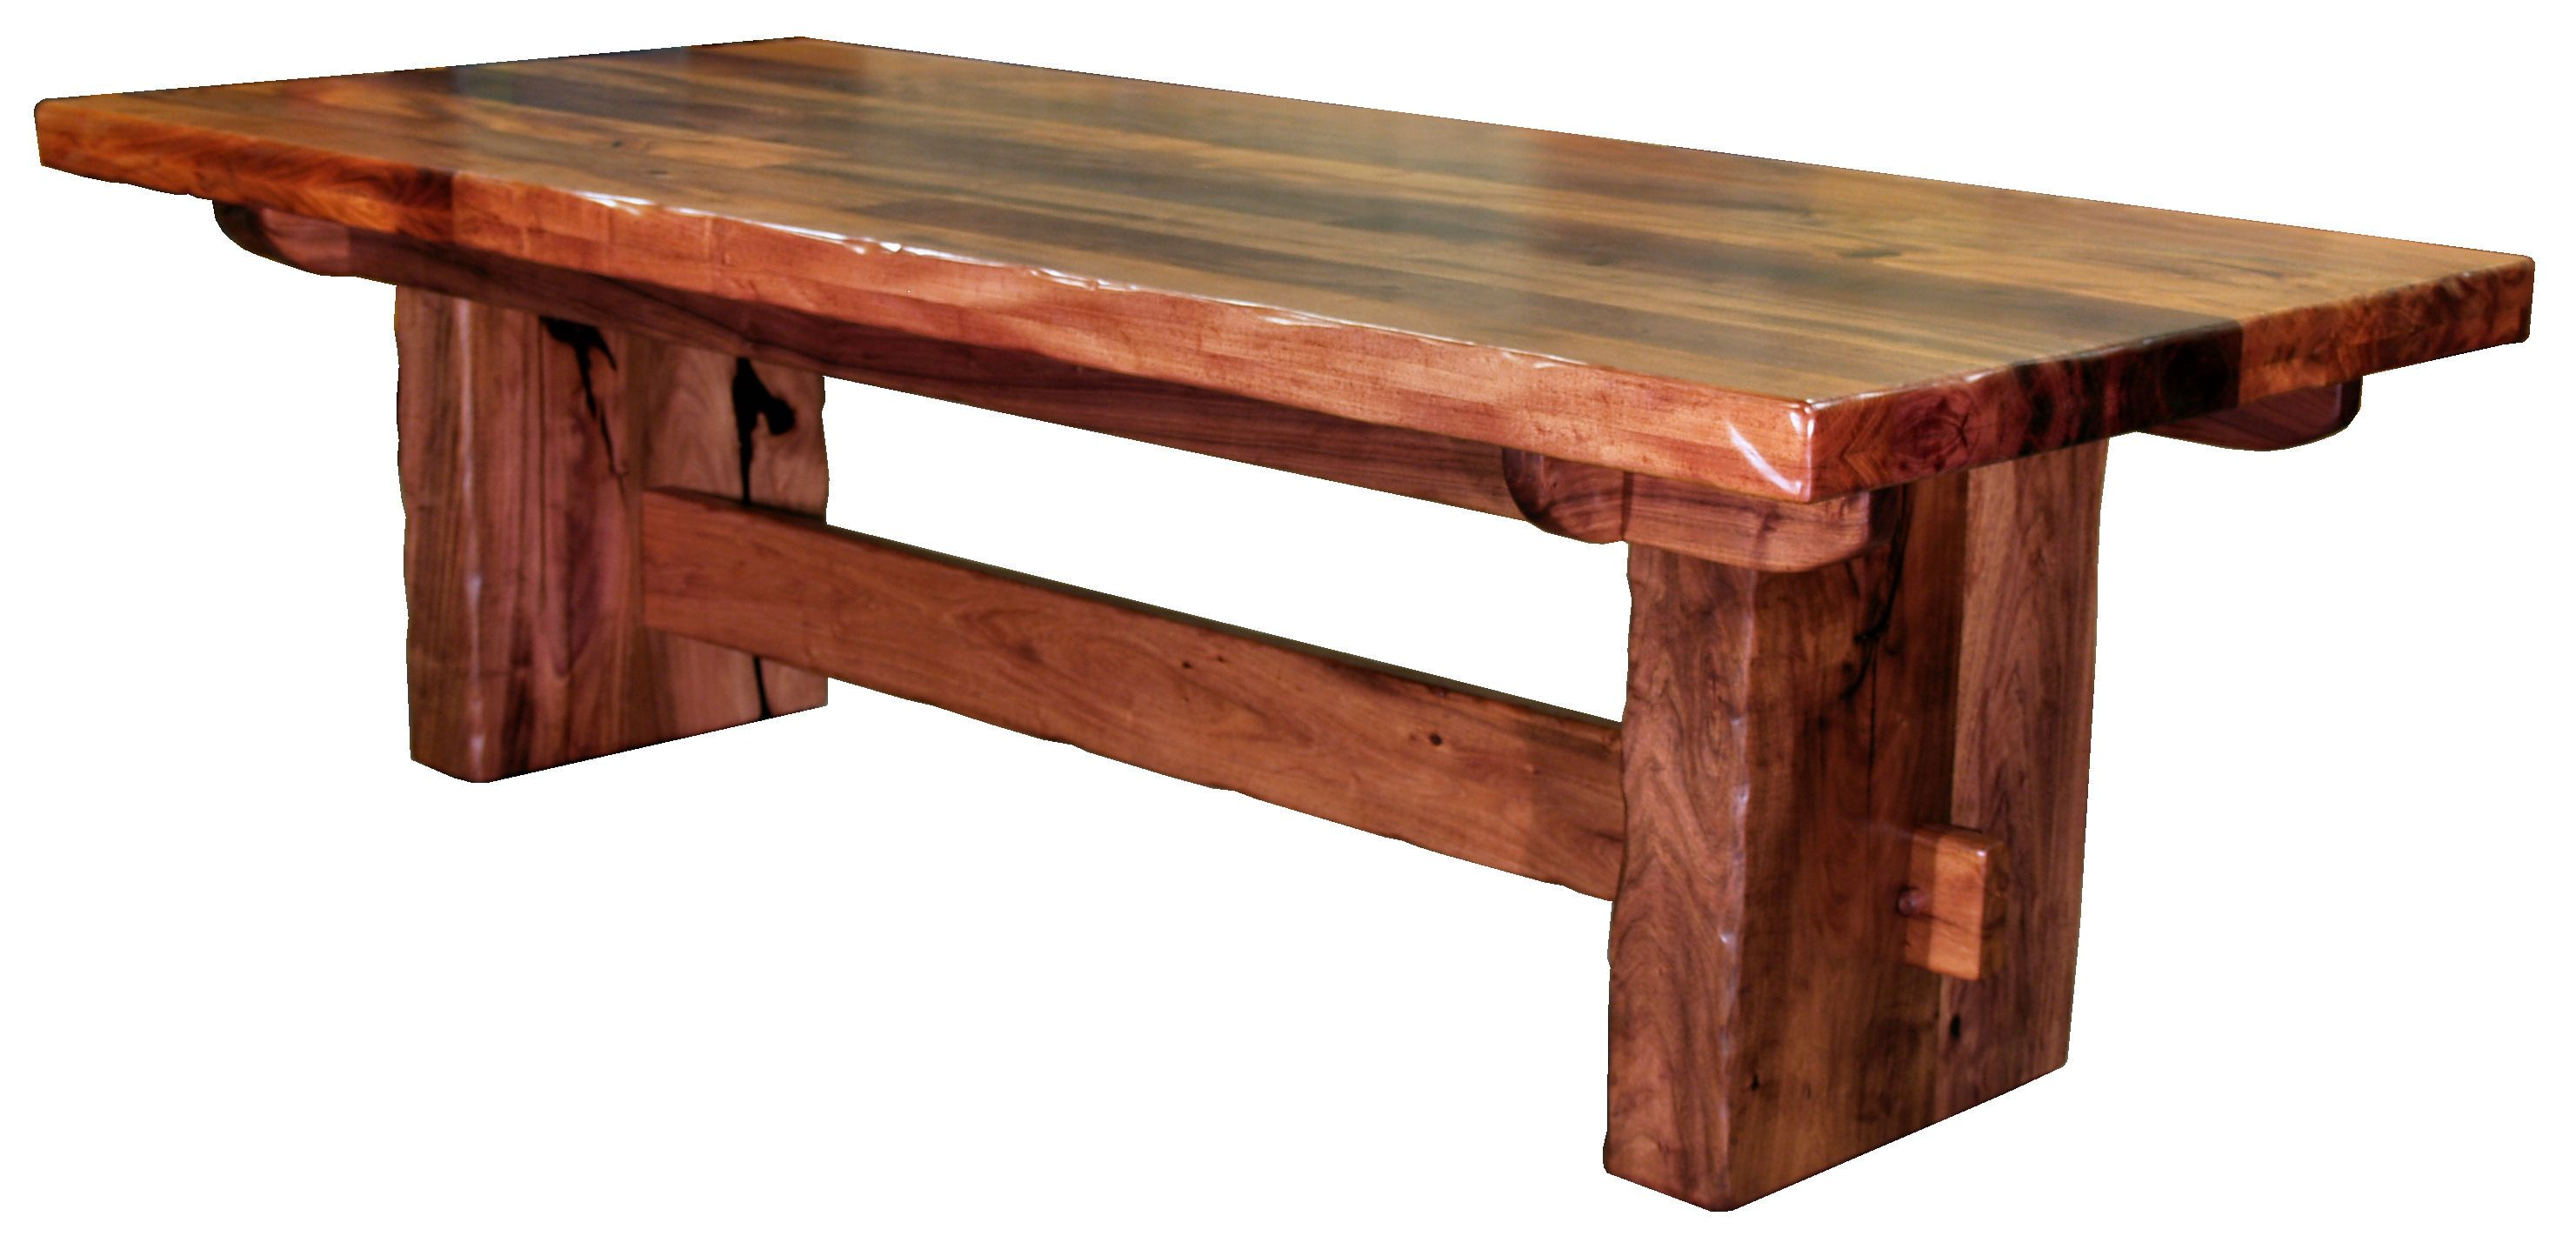 Mesquite Dining Chairs New Mesquite Dining Table Chairs From Mexico Click Here If